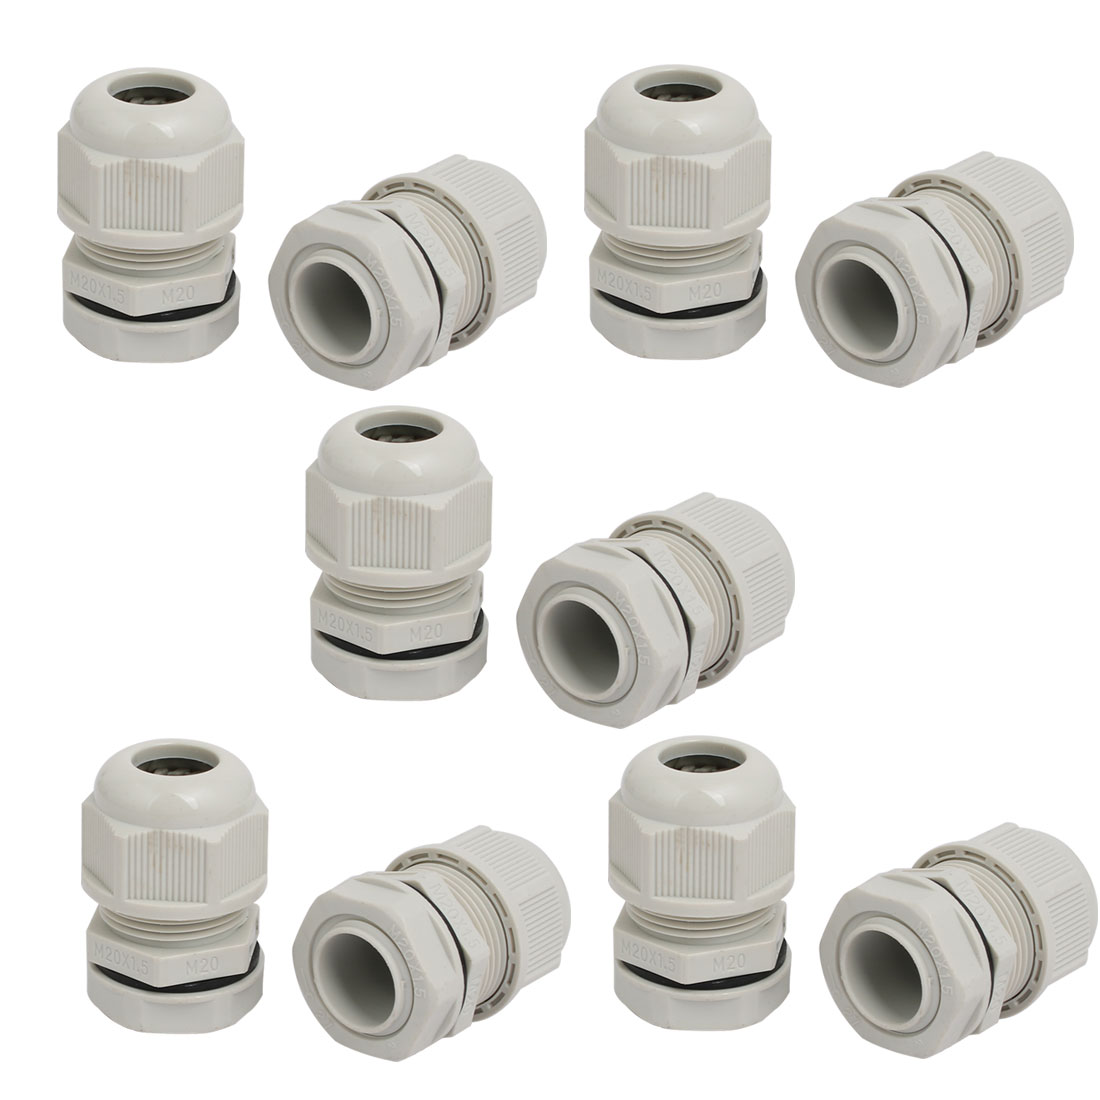 M20 x 1.5mm 3mm-6mm Adjustable 2 Holes Nylon Cable Gland Joint Gray 10pcs